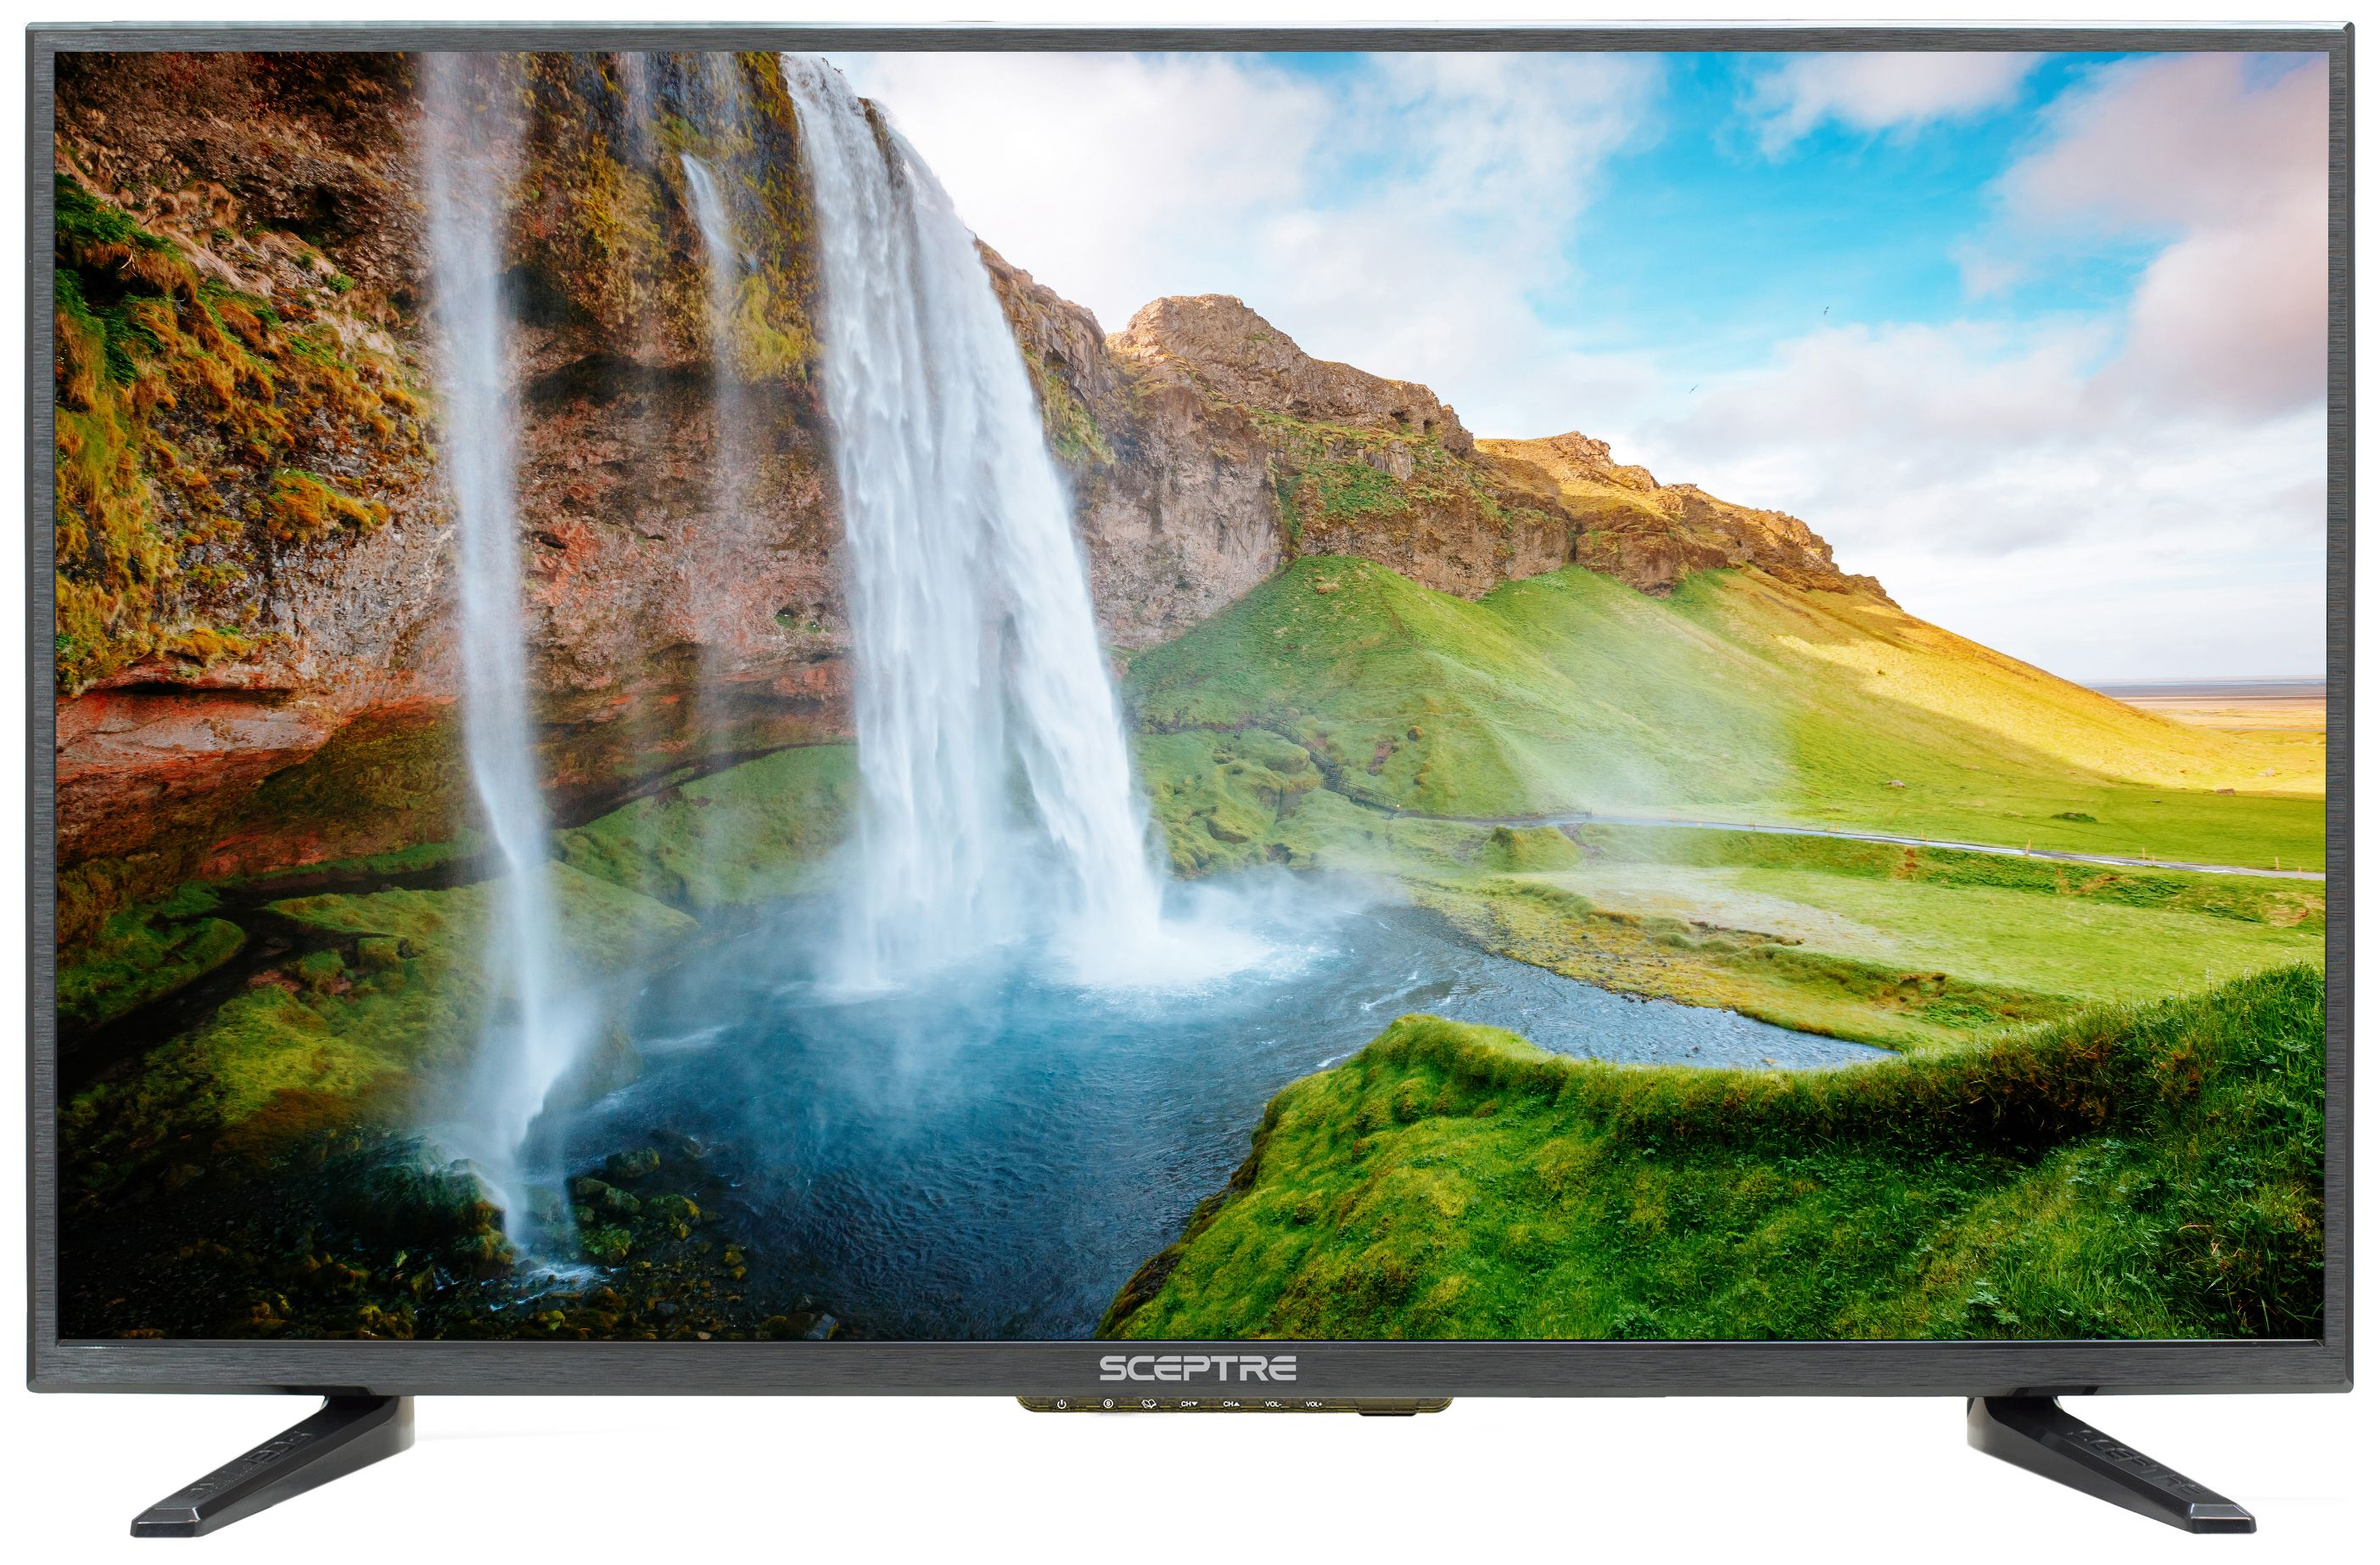 Sceptre 32-in Class FHD LED TV...